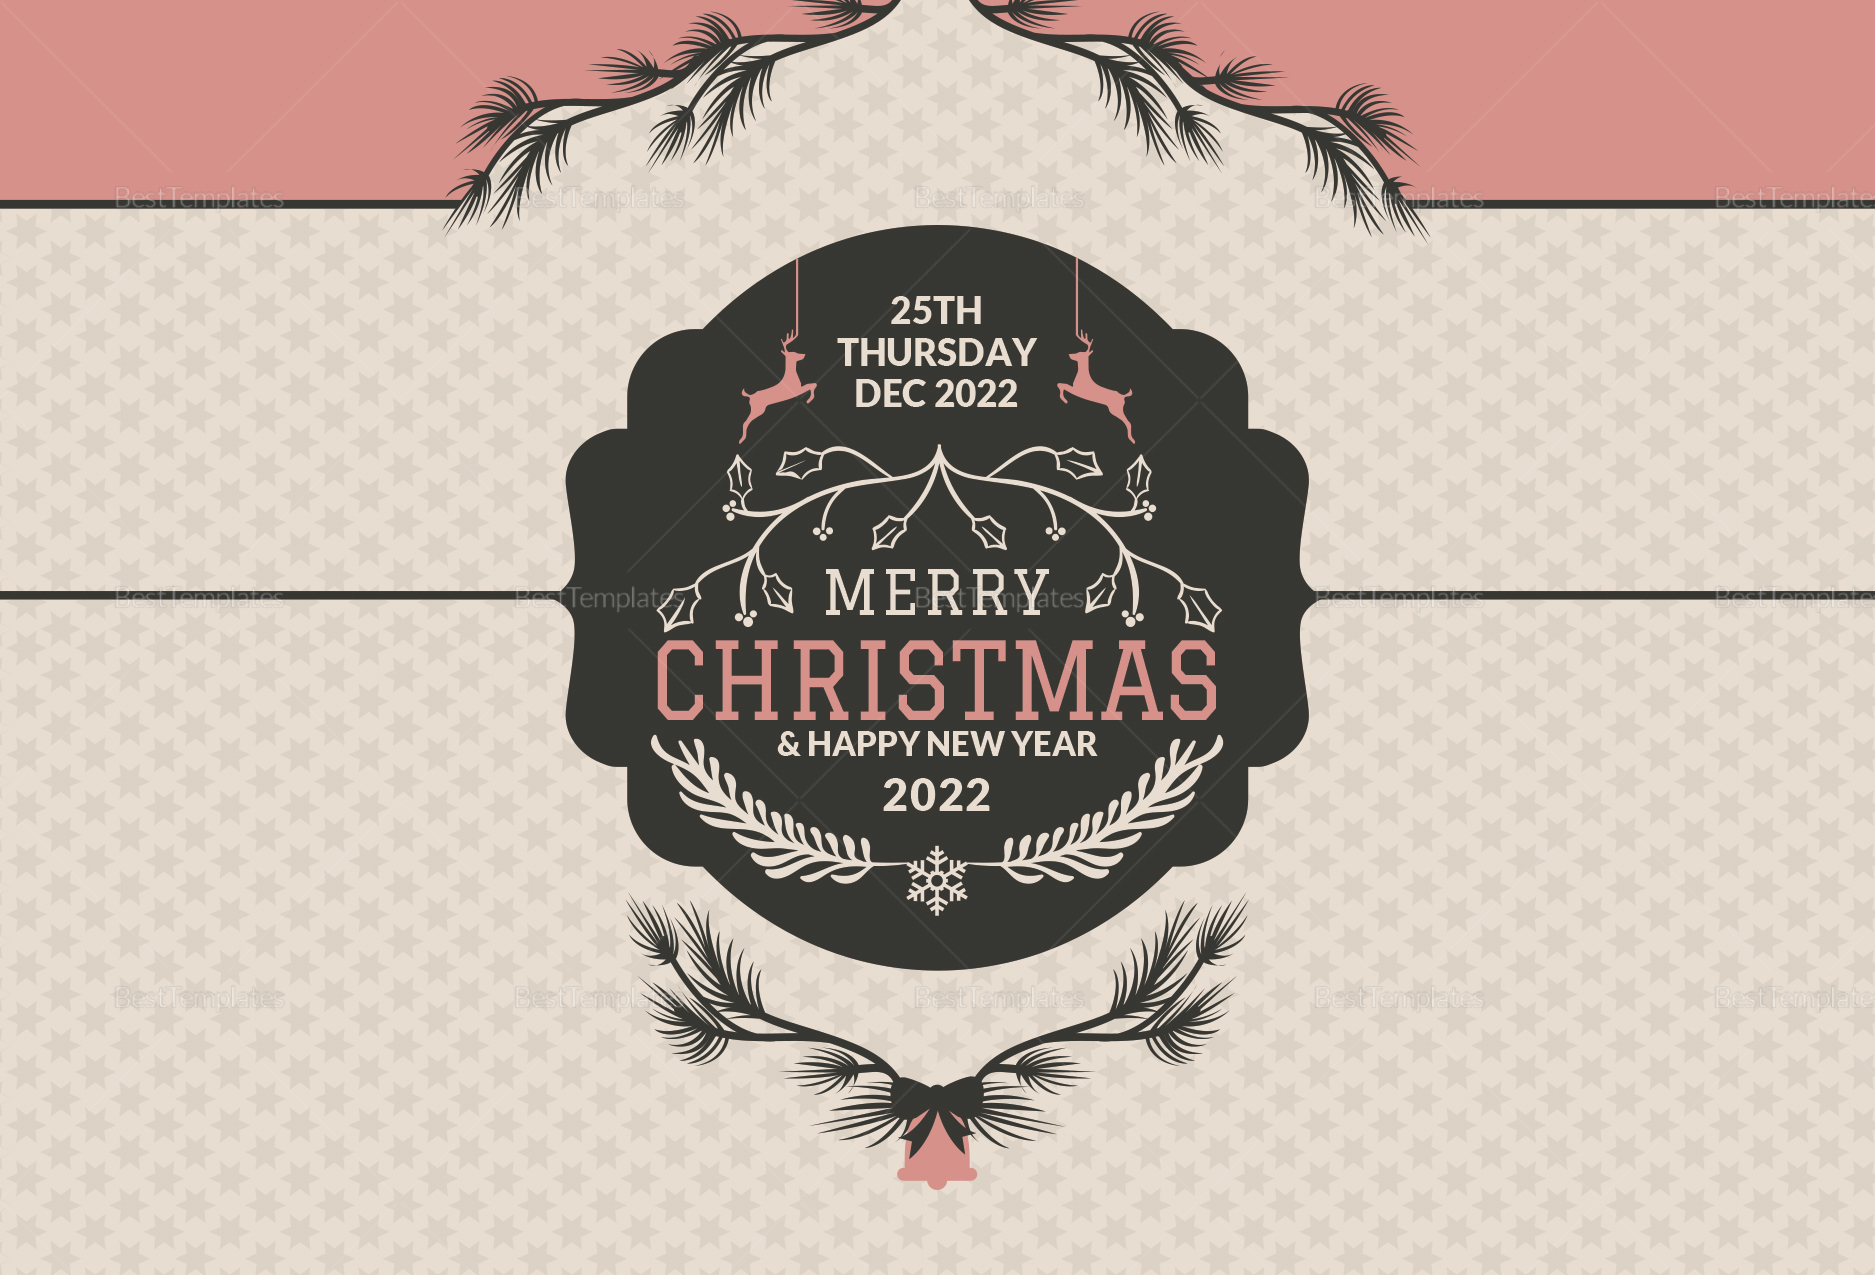 Simple Christmas Greeting Card Template in Adobe Photoshop